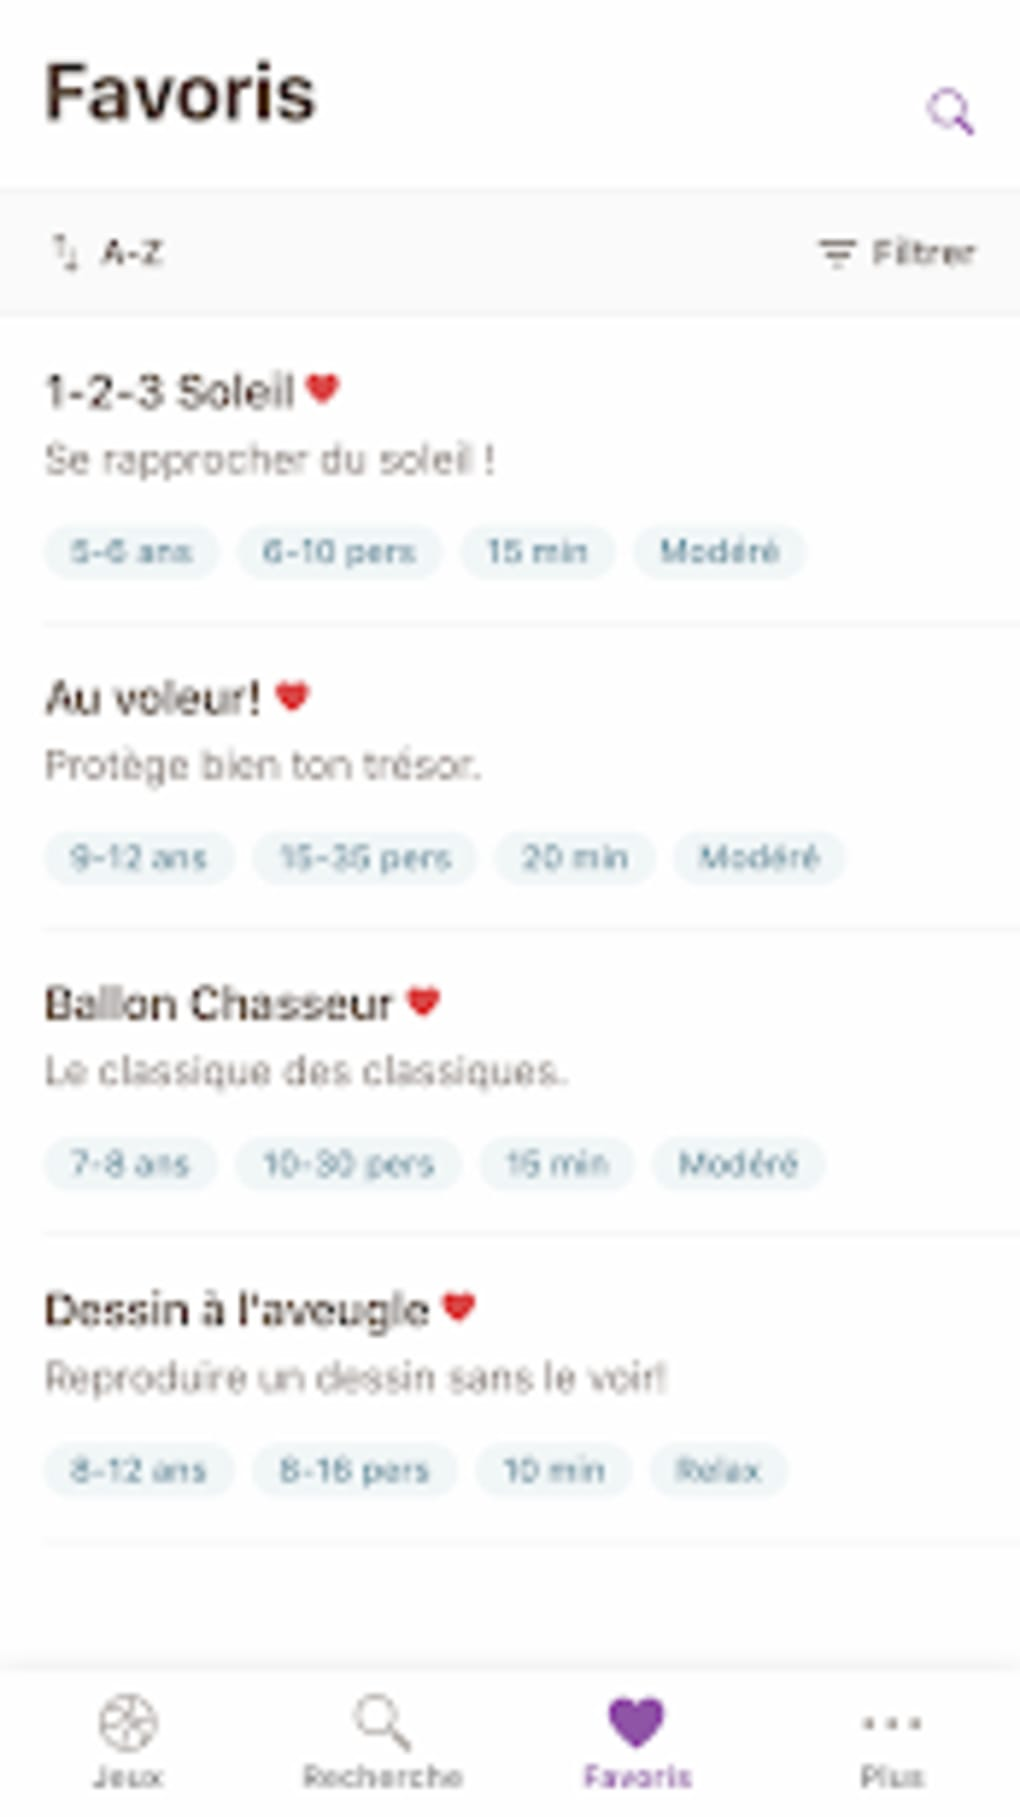 PEP ton jeu for Android - Download